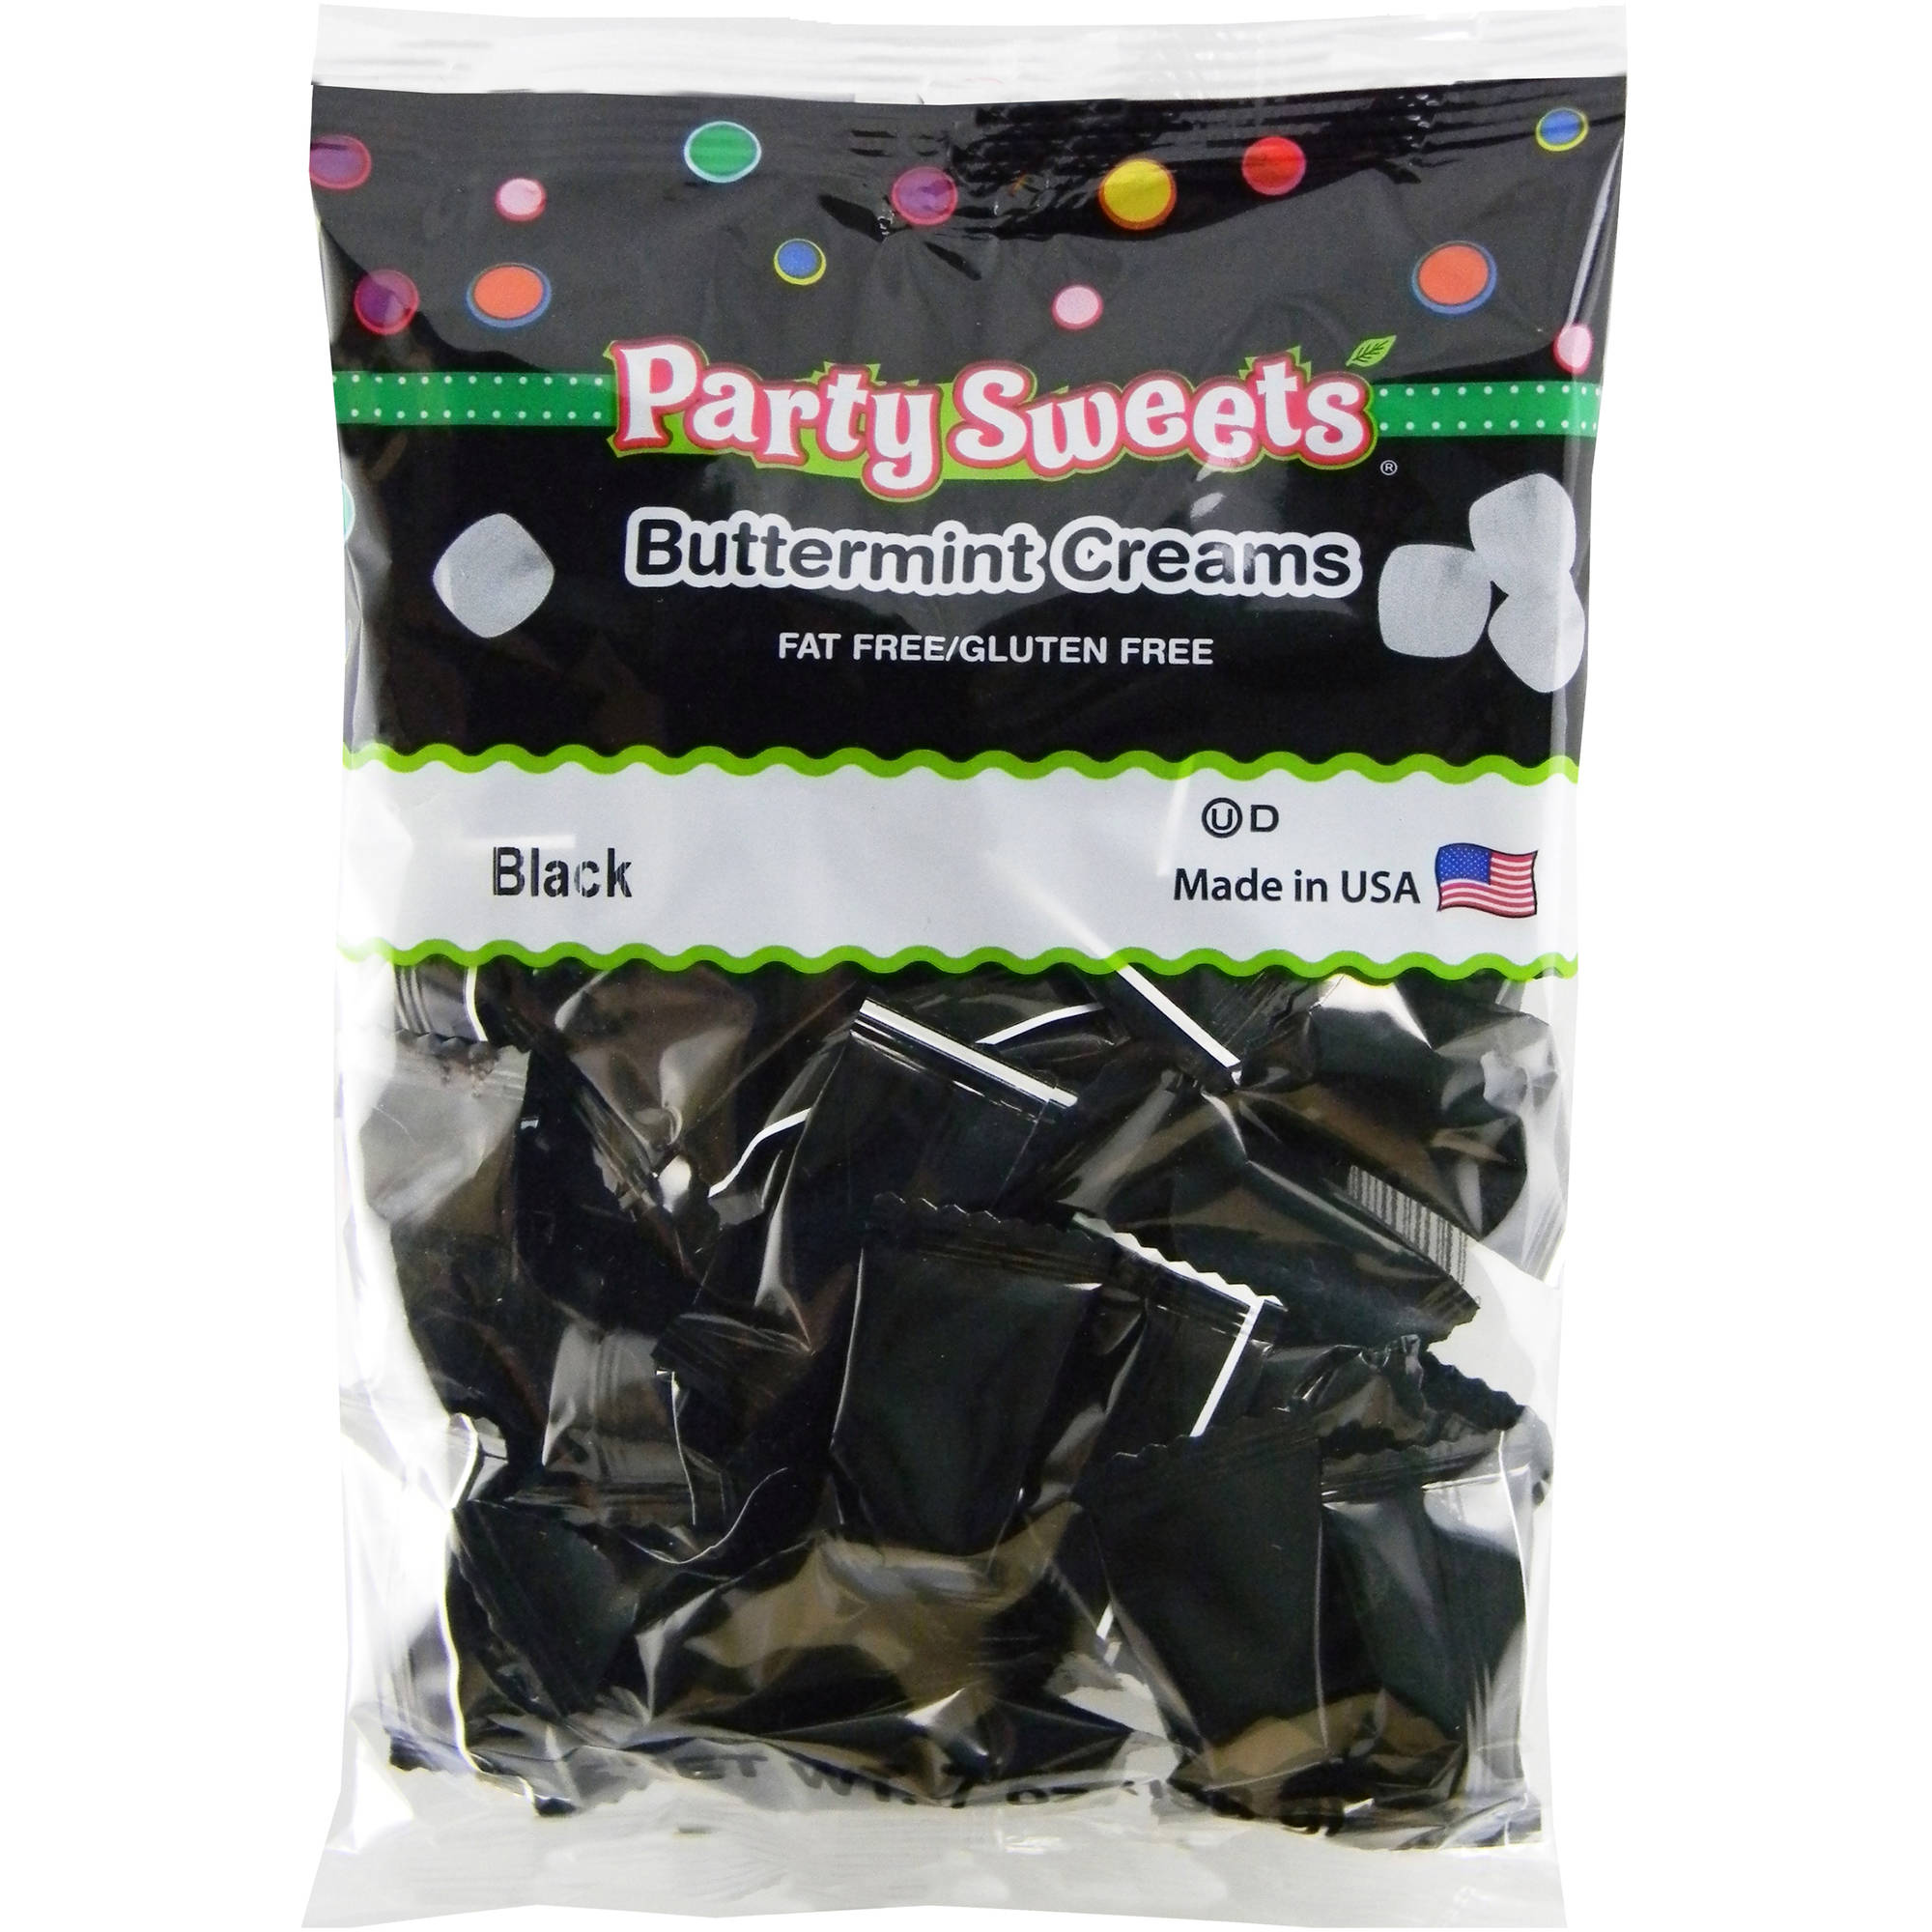 Party Sweets Black Buttermint Creams Candy, 7 oz